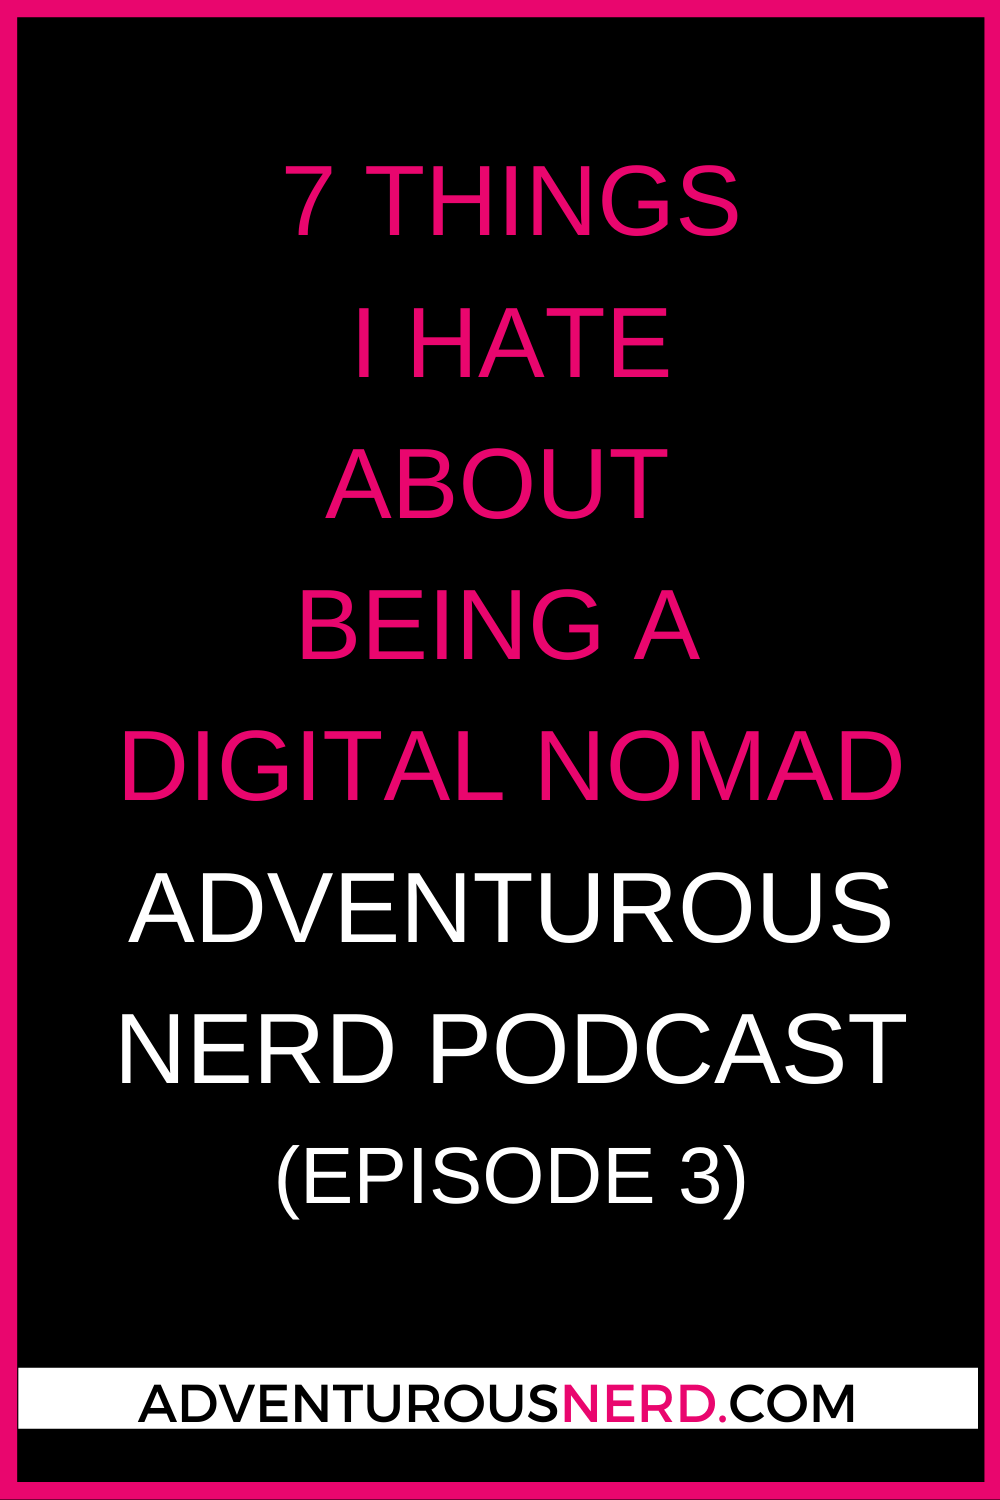 image of text box 7 things I hate about being a digital nomad podcast episode 3